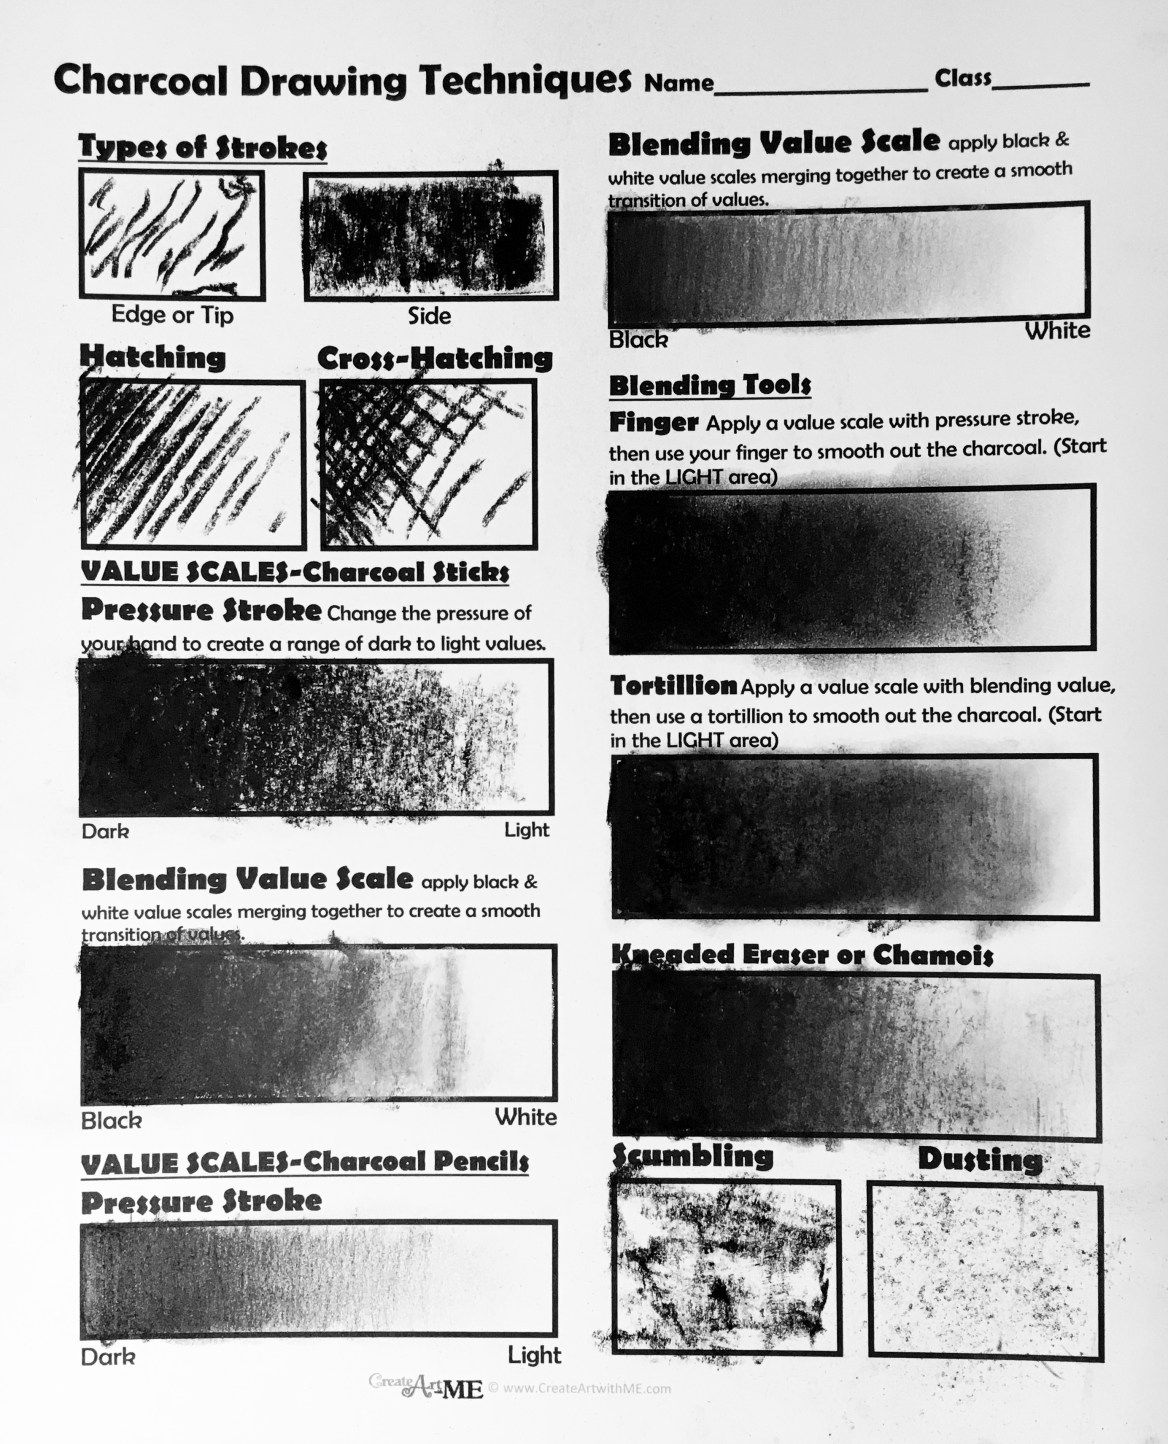 Charcoal Drawing Techniques Lesson Plan Amp Worksheet In